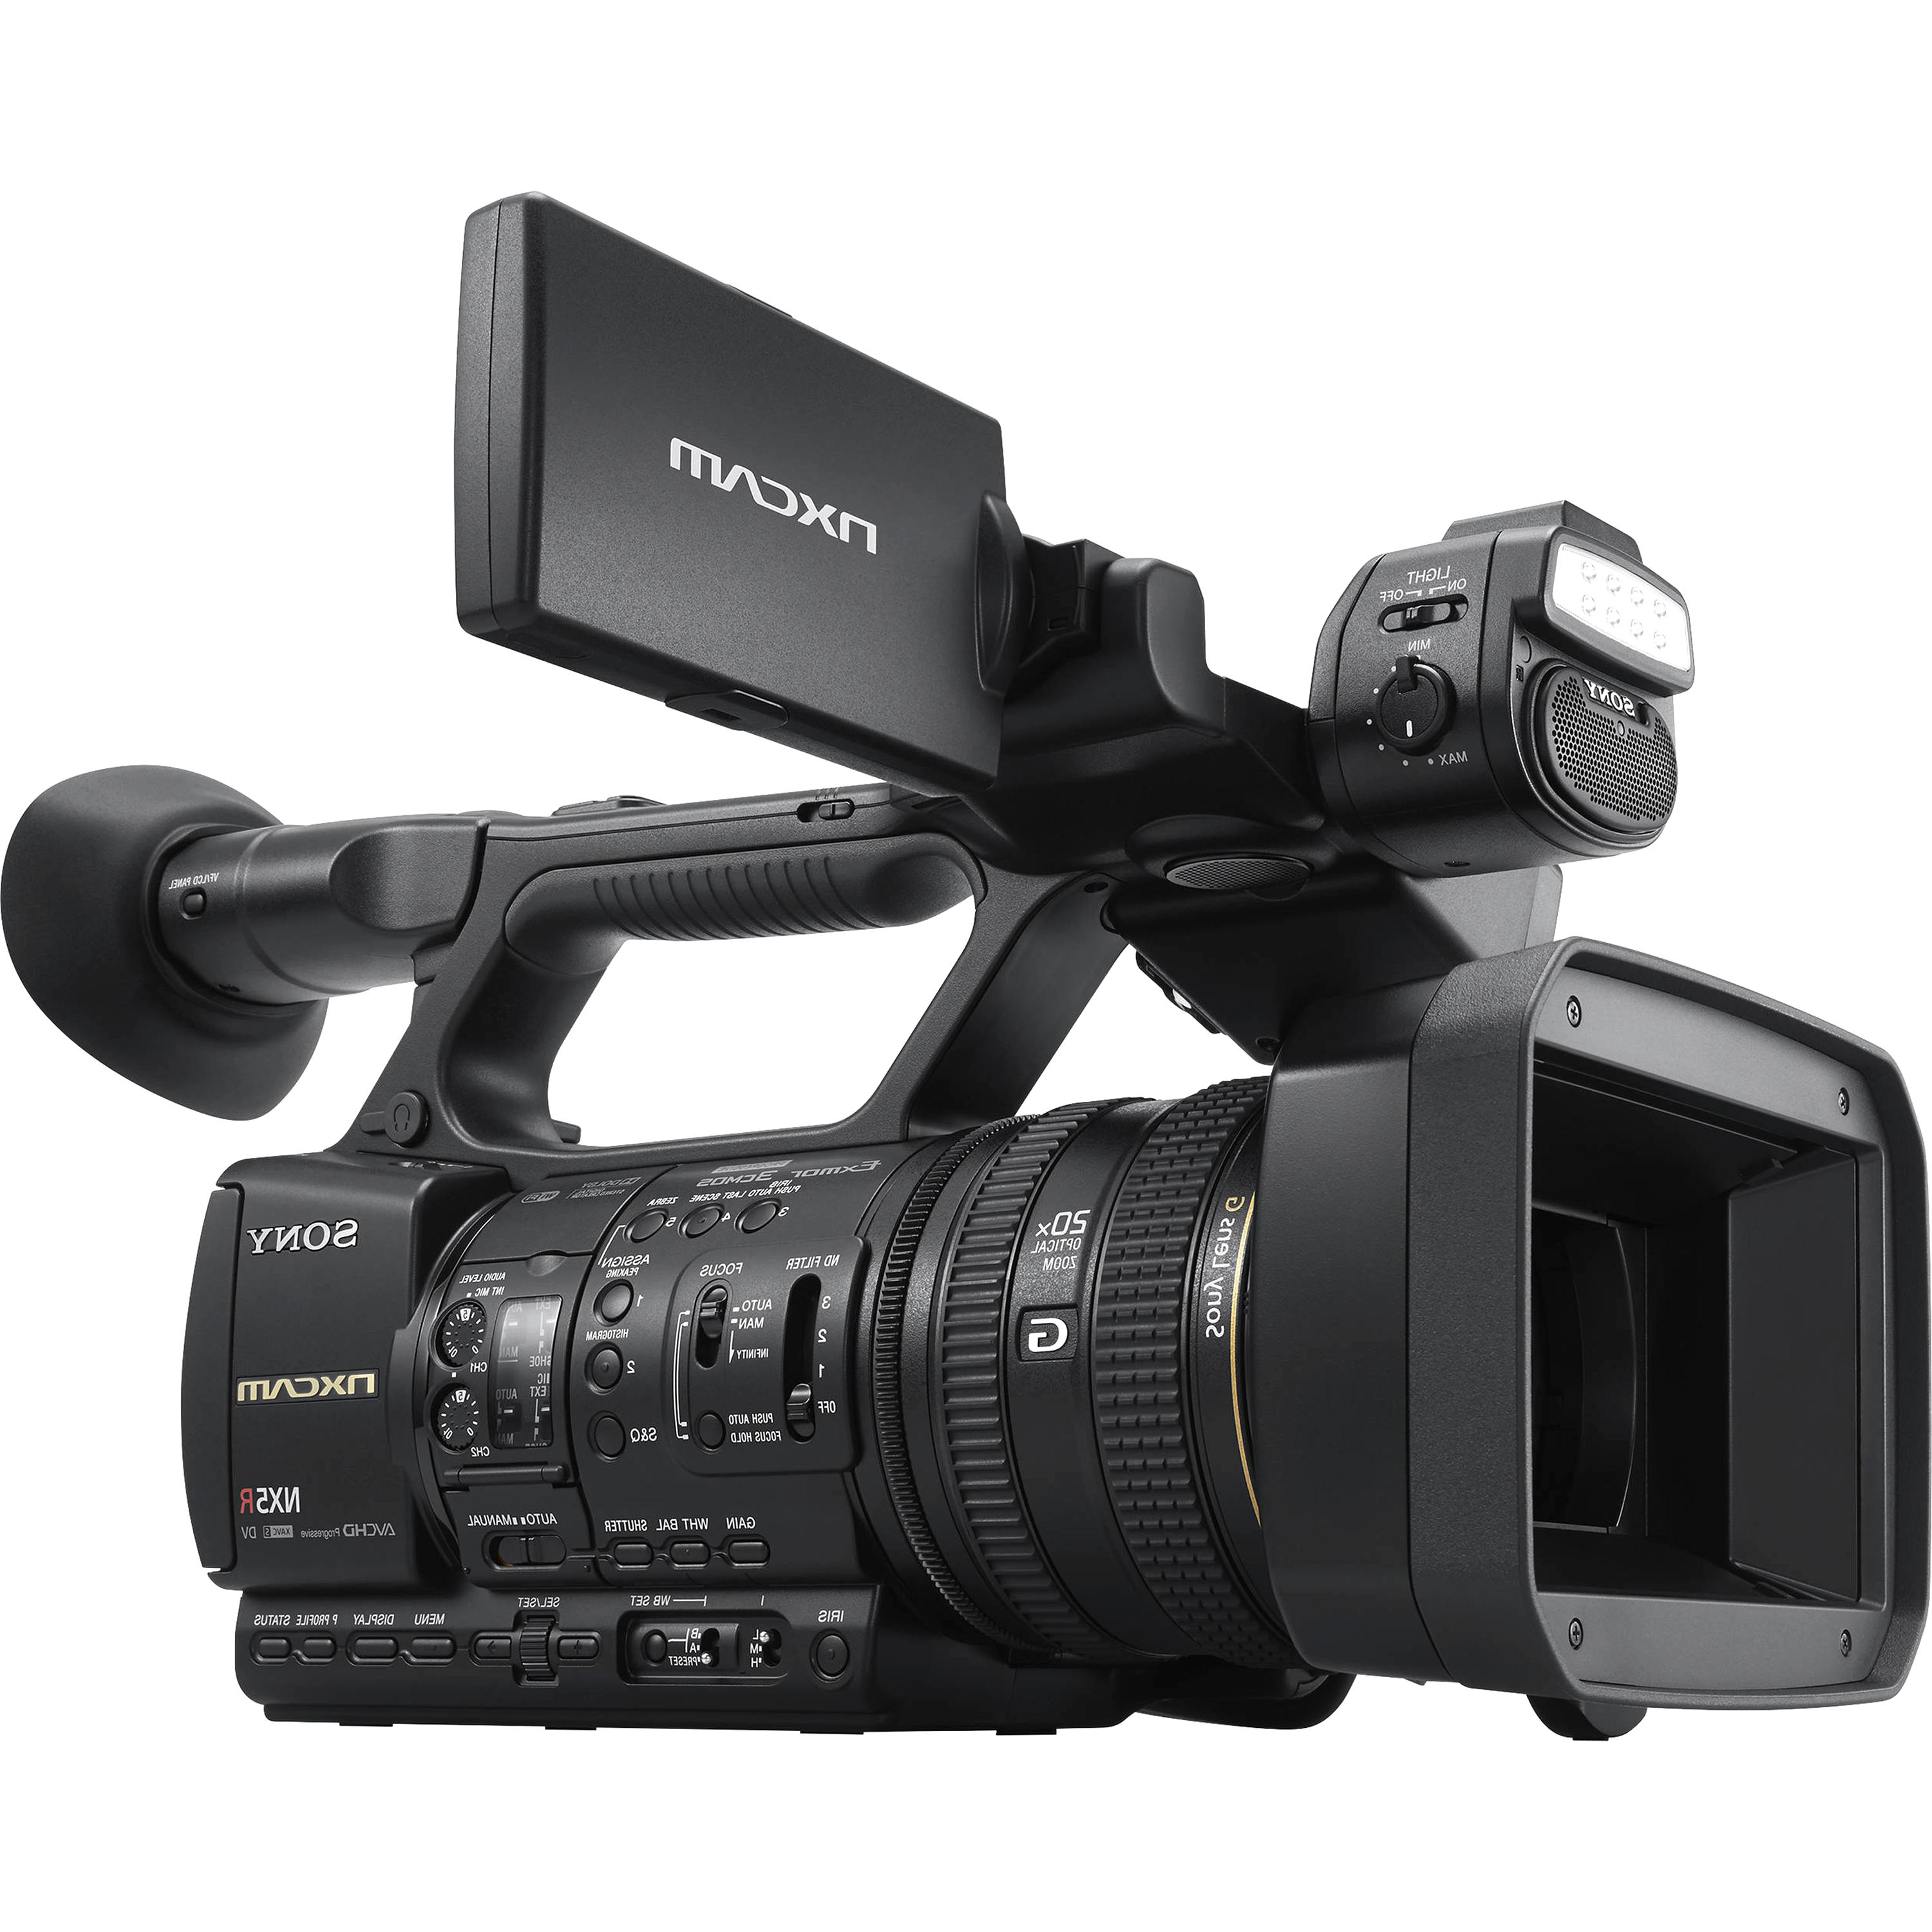 camcorders hxr for sale